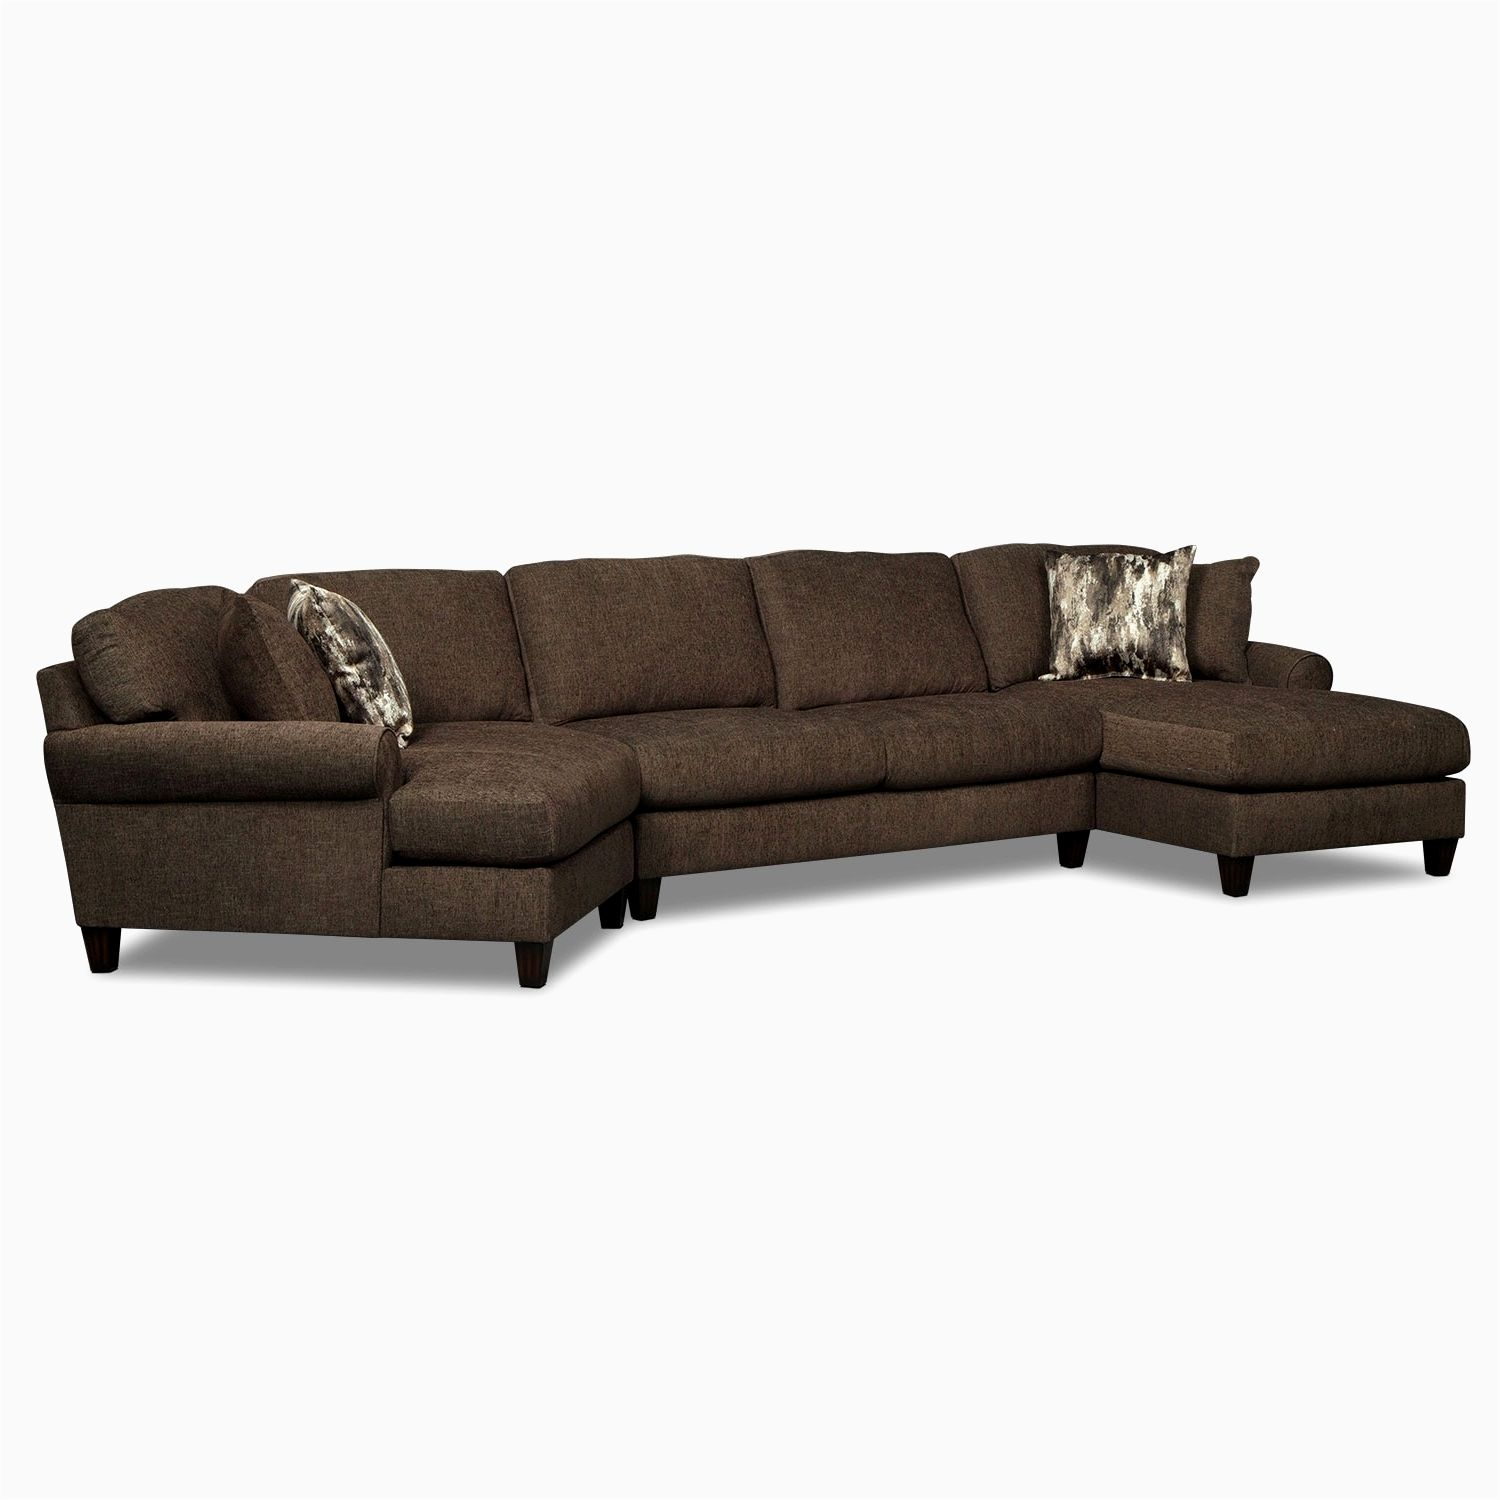 awesome sofa covers at walmart layout-Best Of sofa Covers at Walmart Portrait